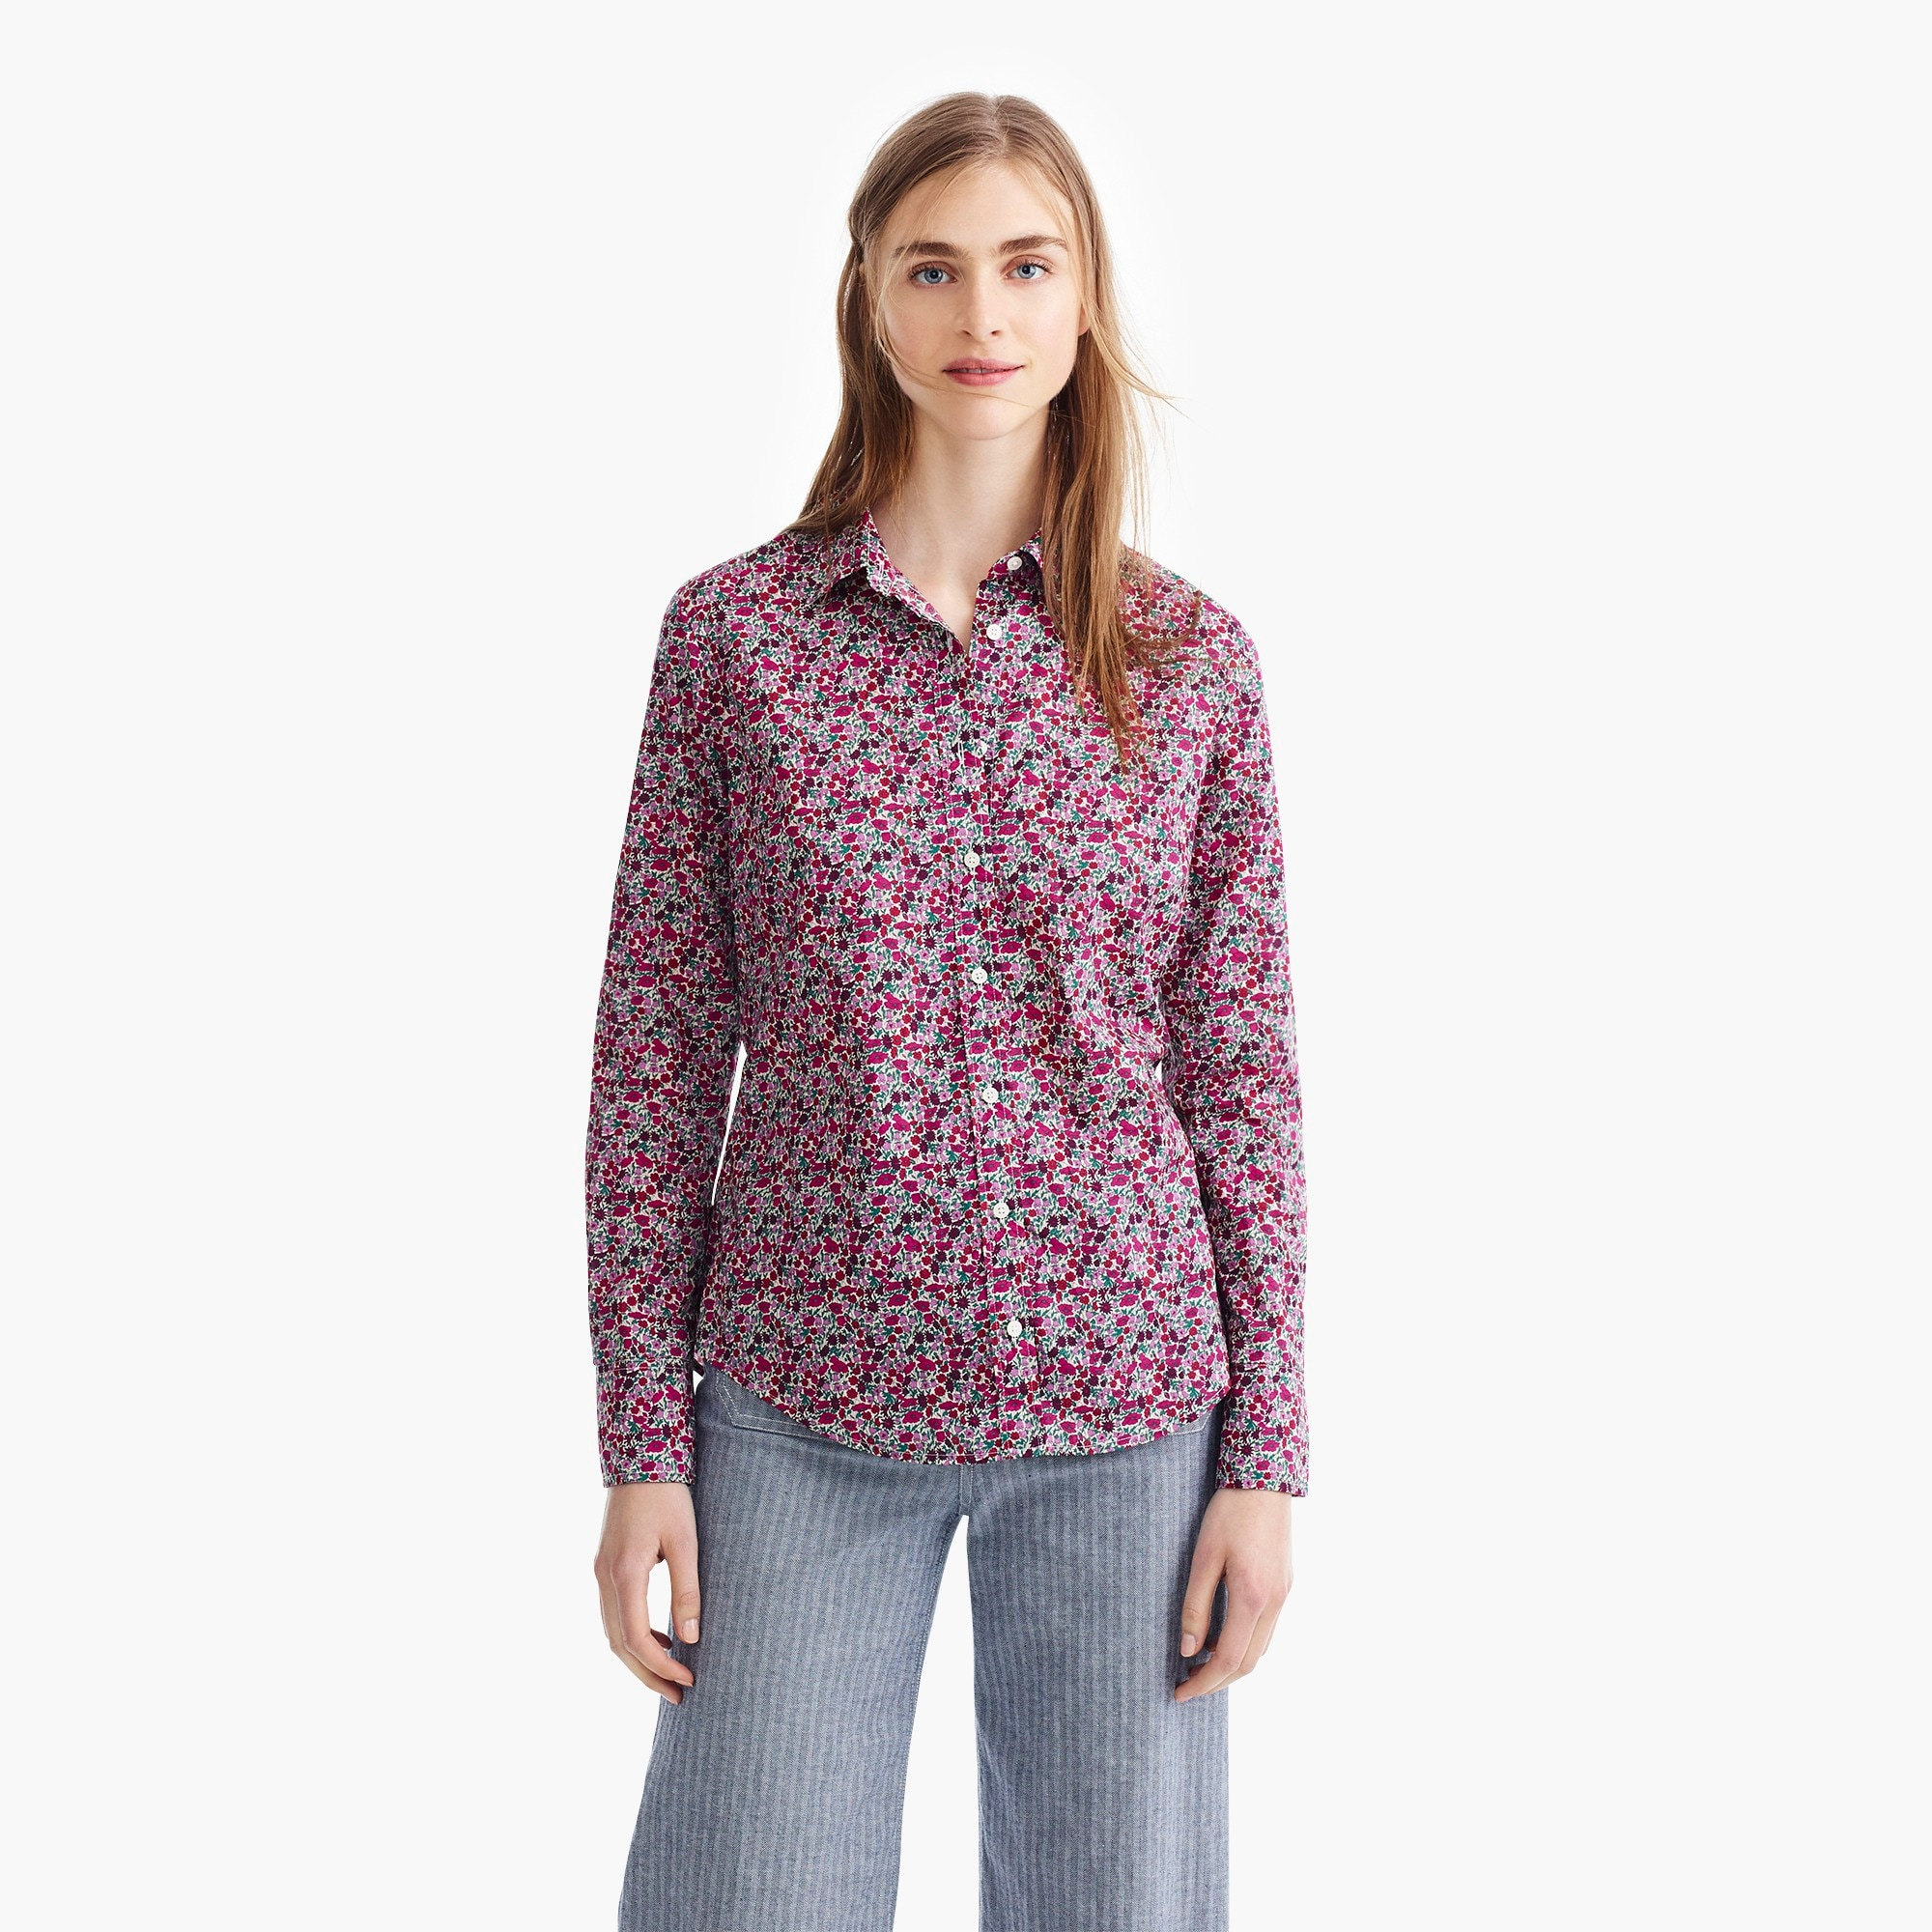 Image 3 for Slim perfect shirt in Liberty® floral